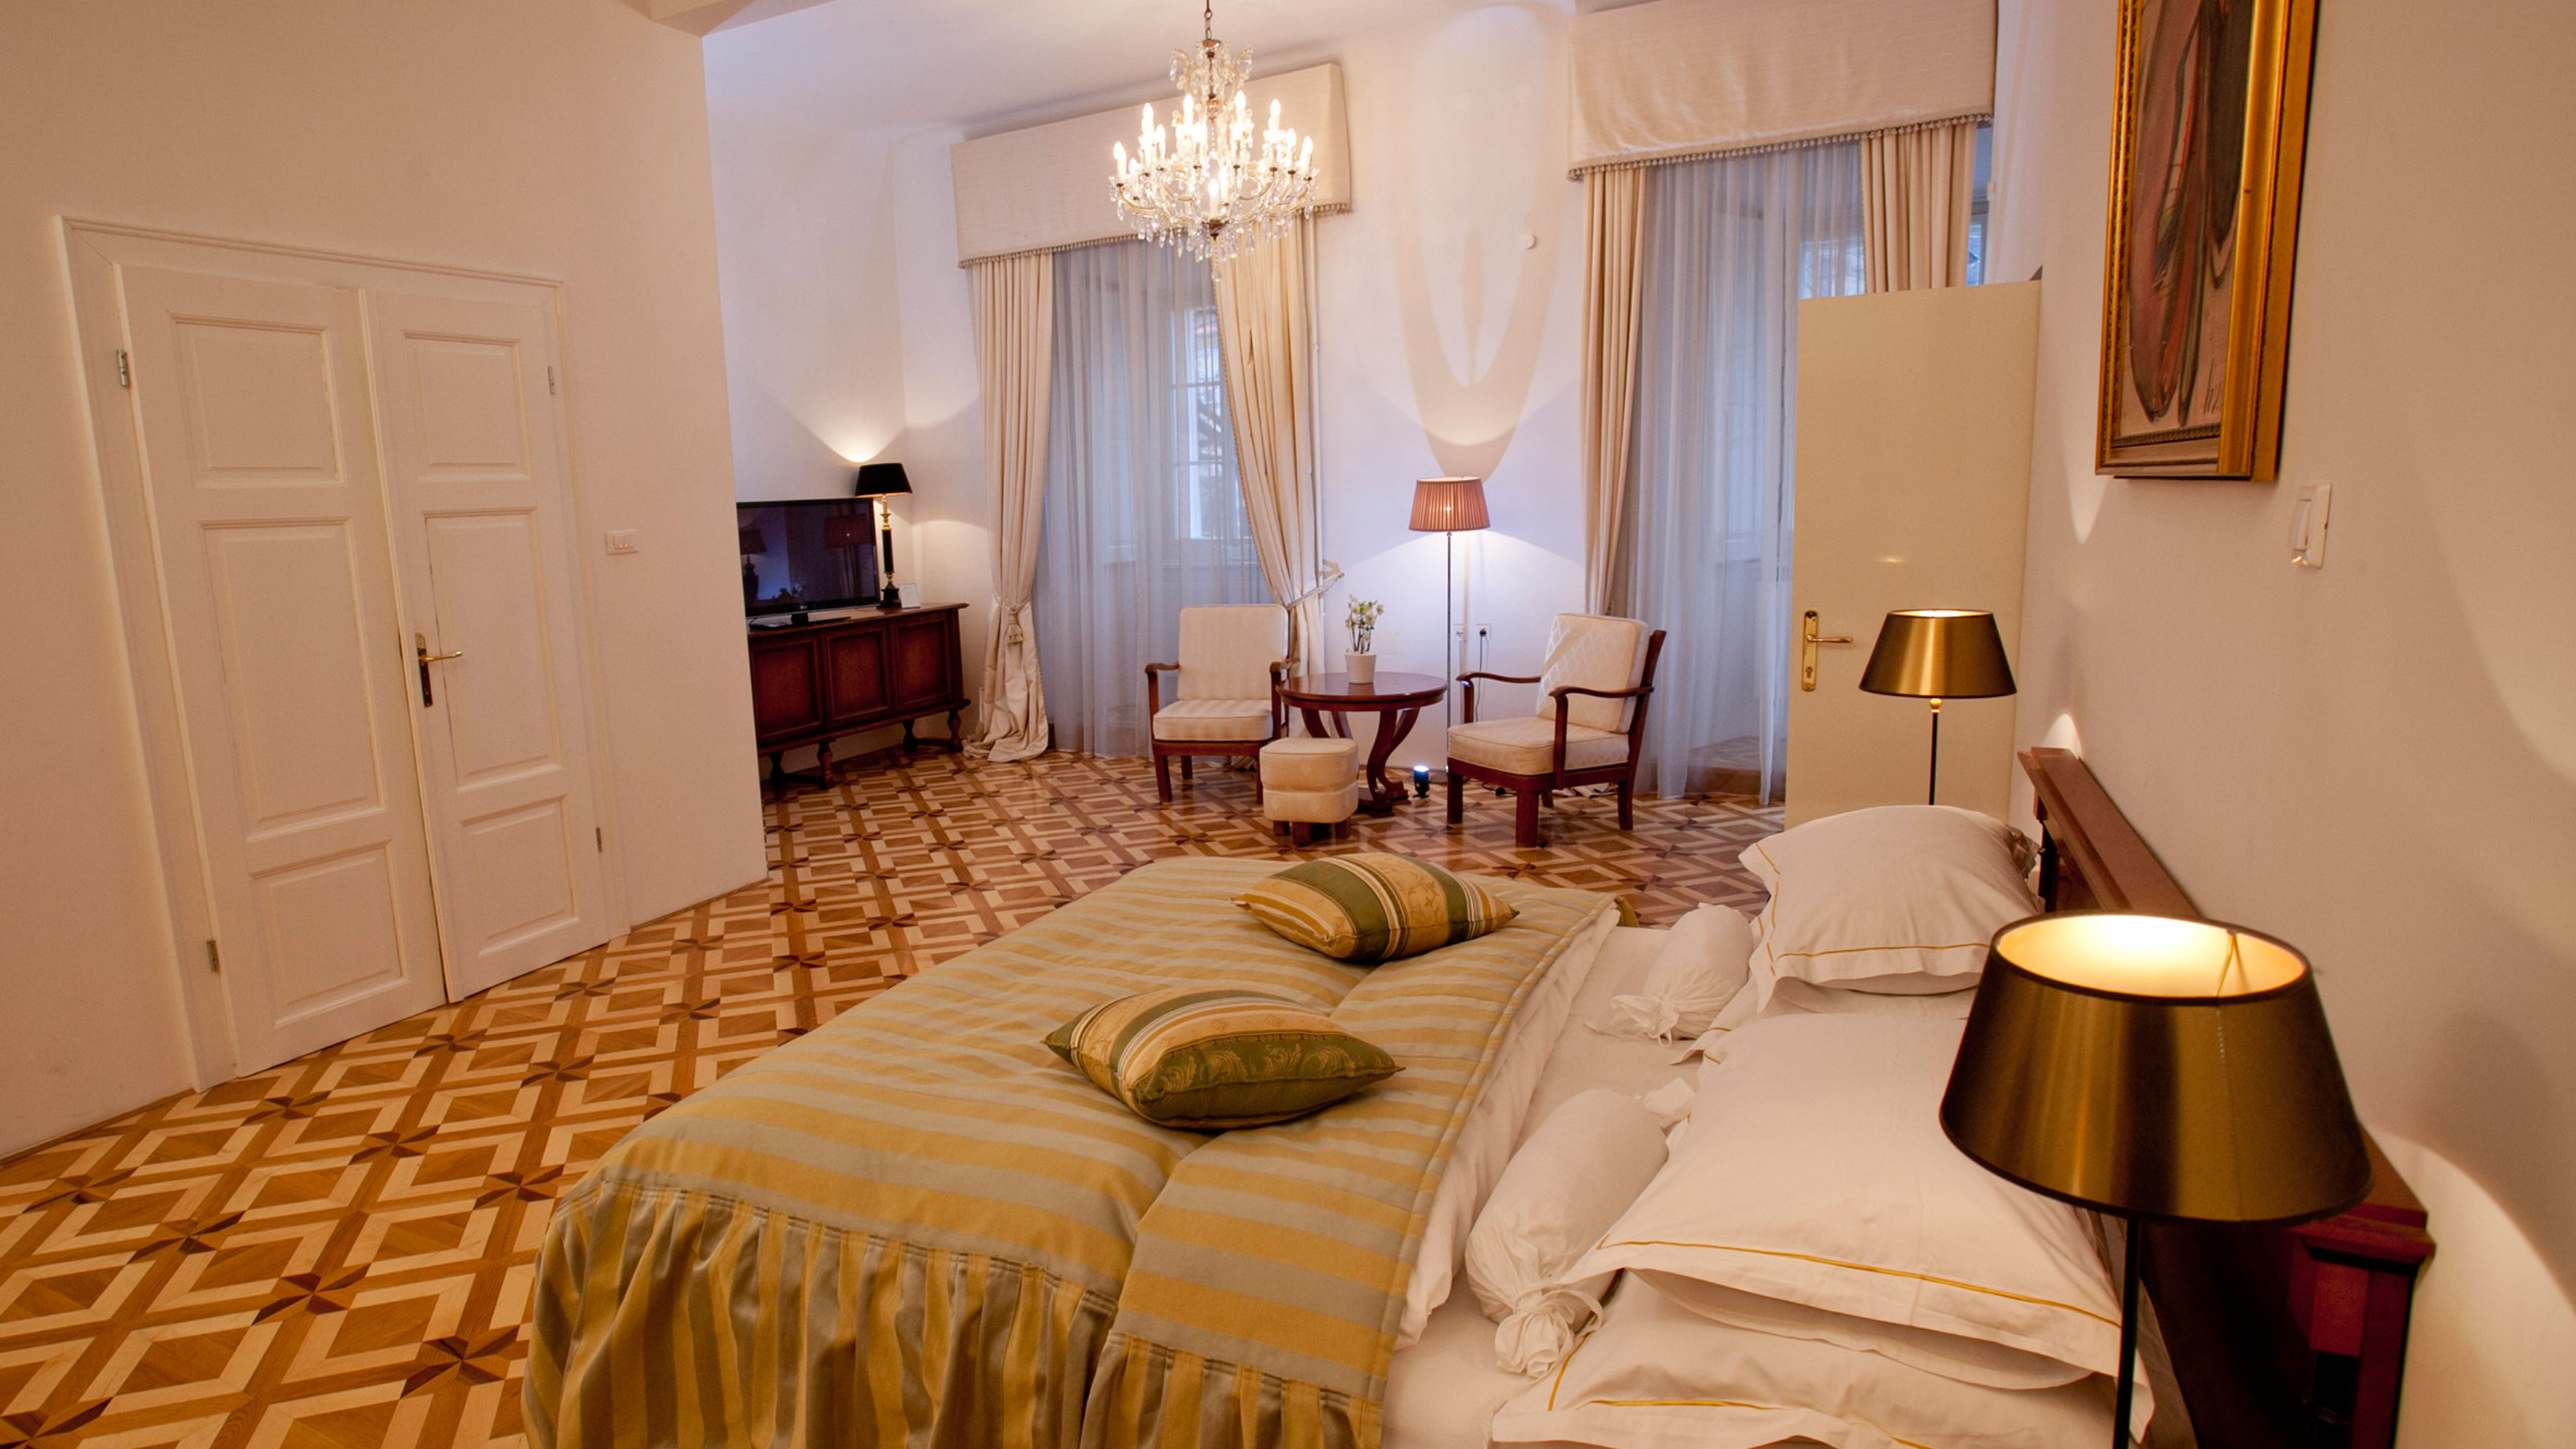 Room Antiq Palace Hotel Boutiquehotel in Ljubljana